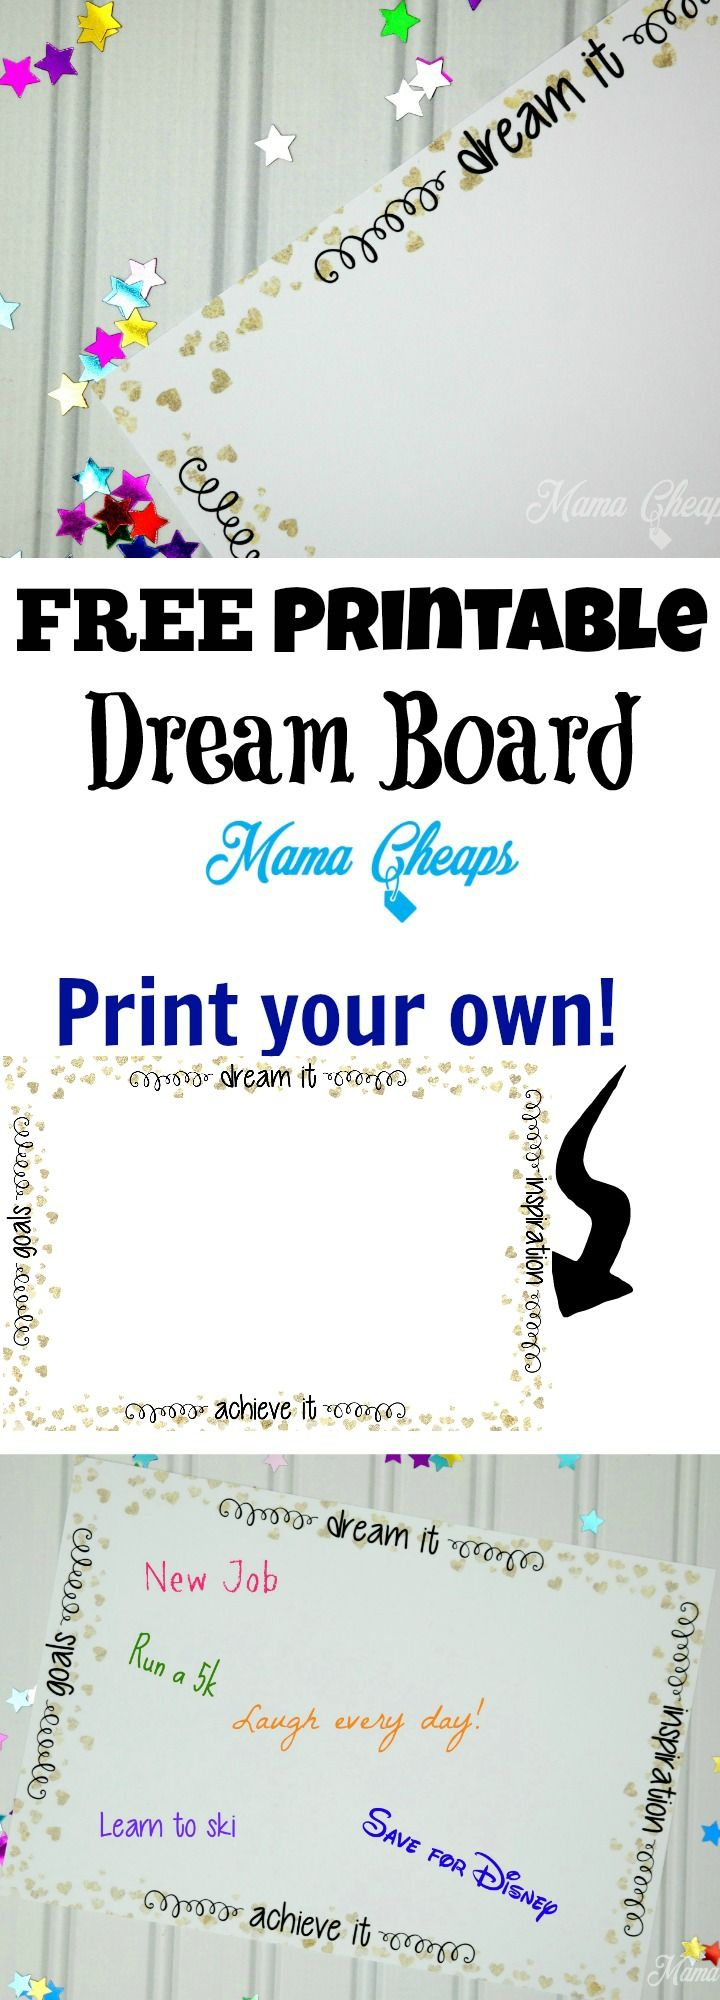 Free Printable DIY Dream Board from @MamaCheaps http://bit.ly/2iU5nyt